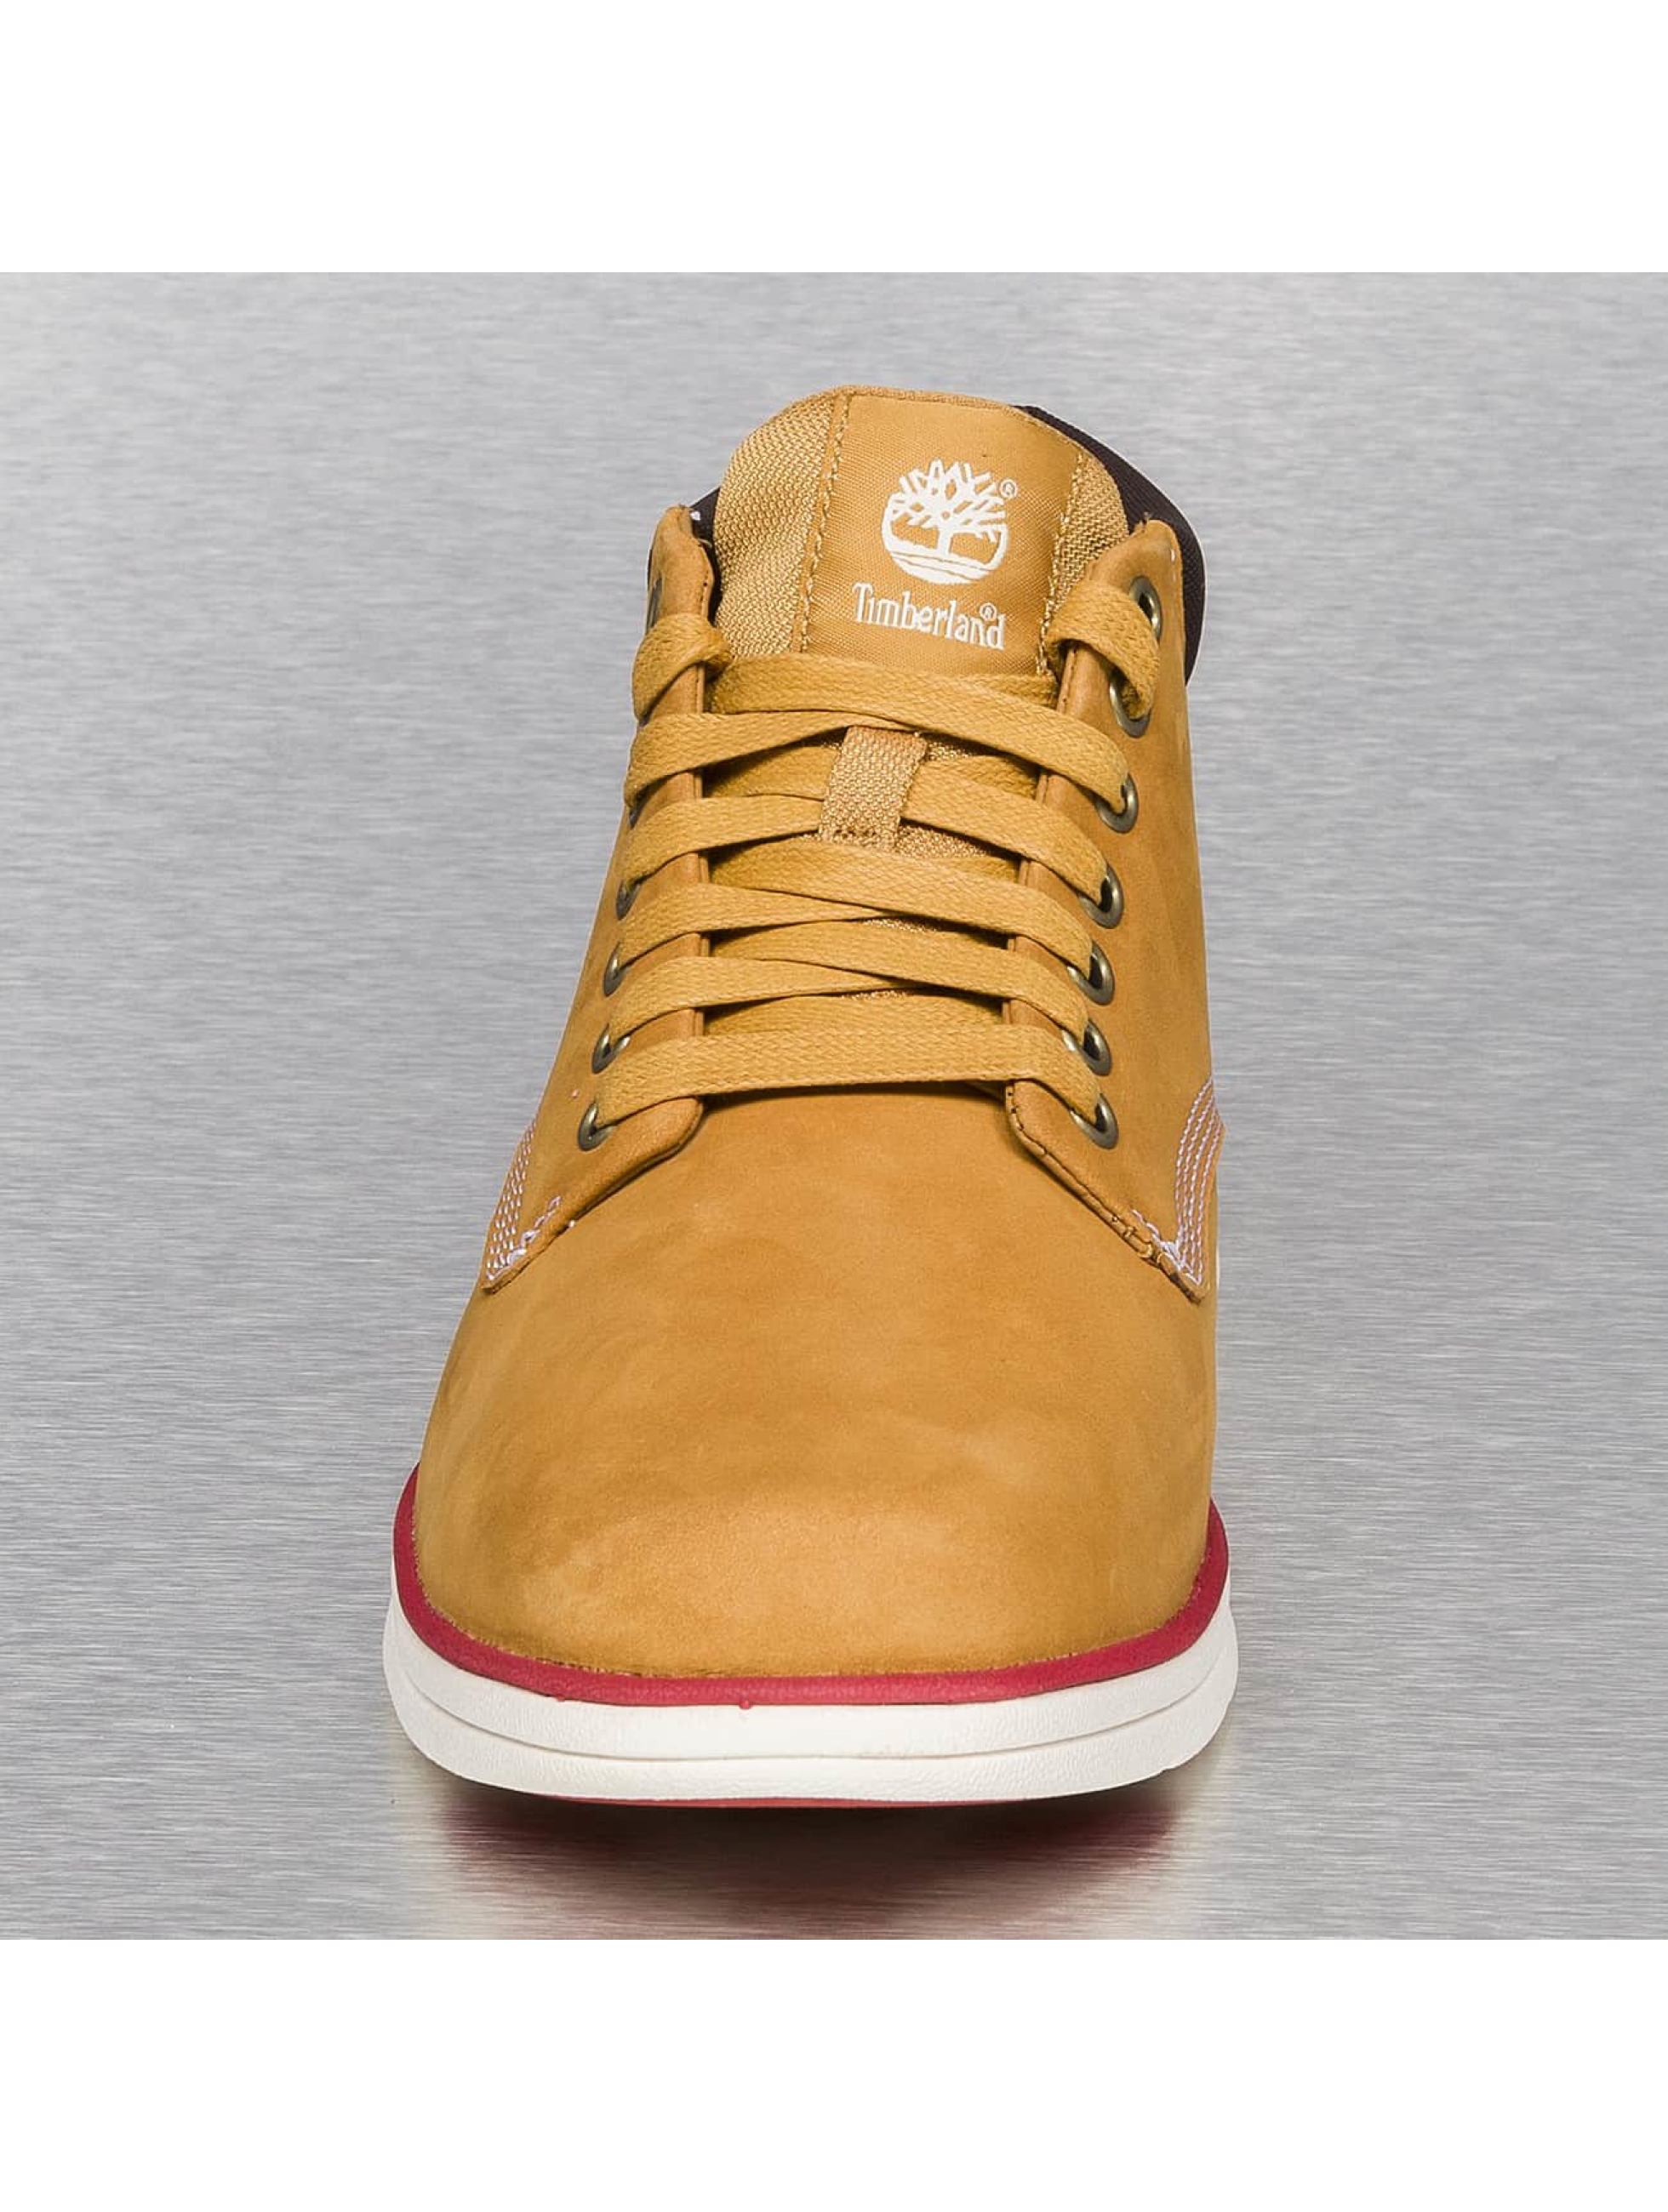 Timberland Sneakers Chukka Leather beige